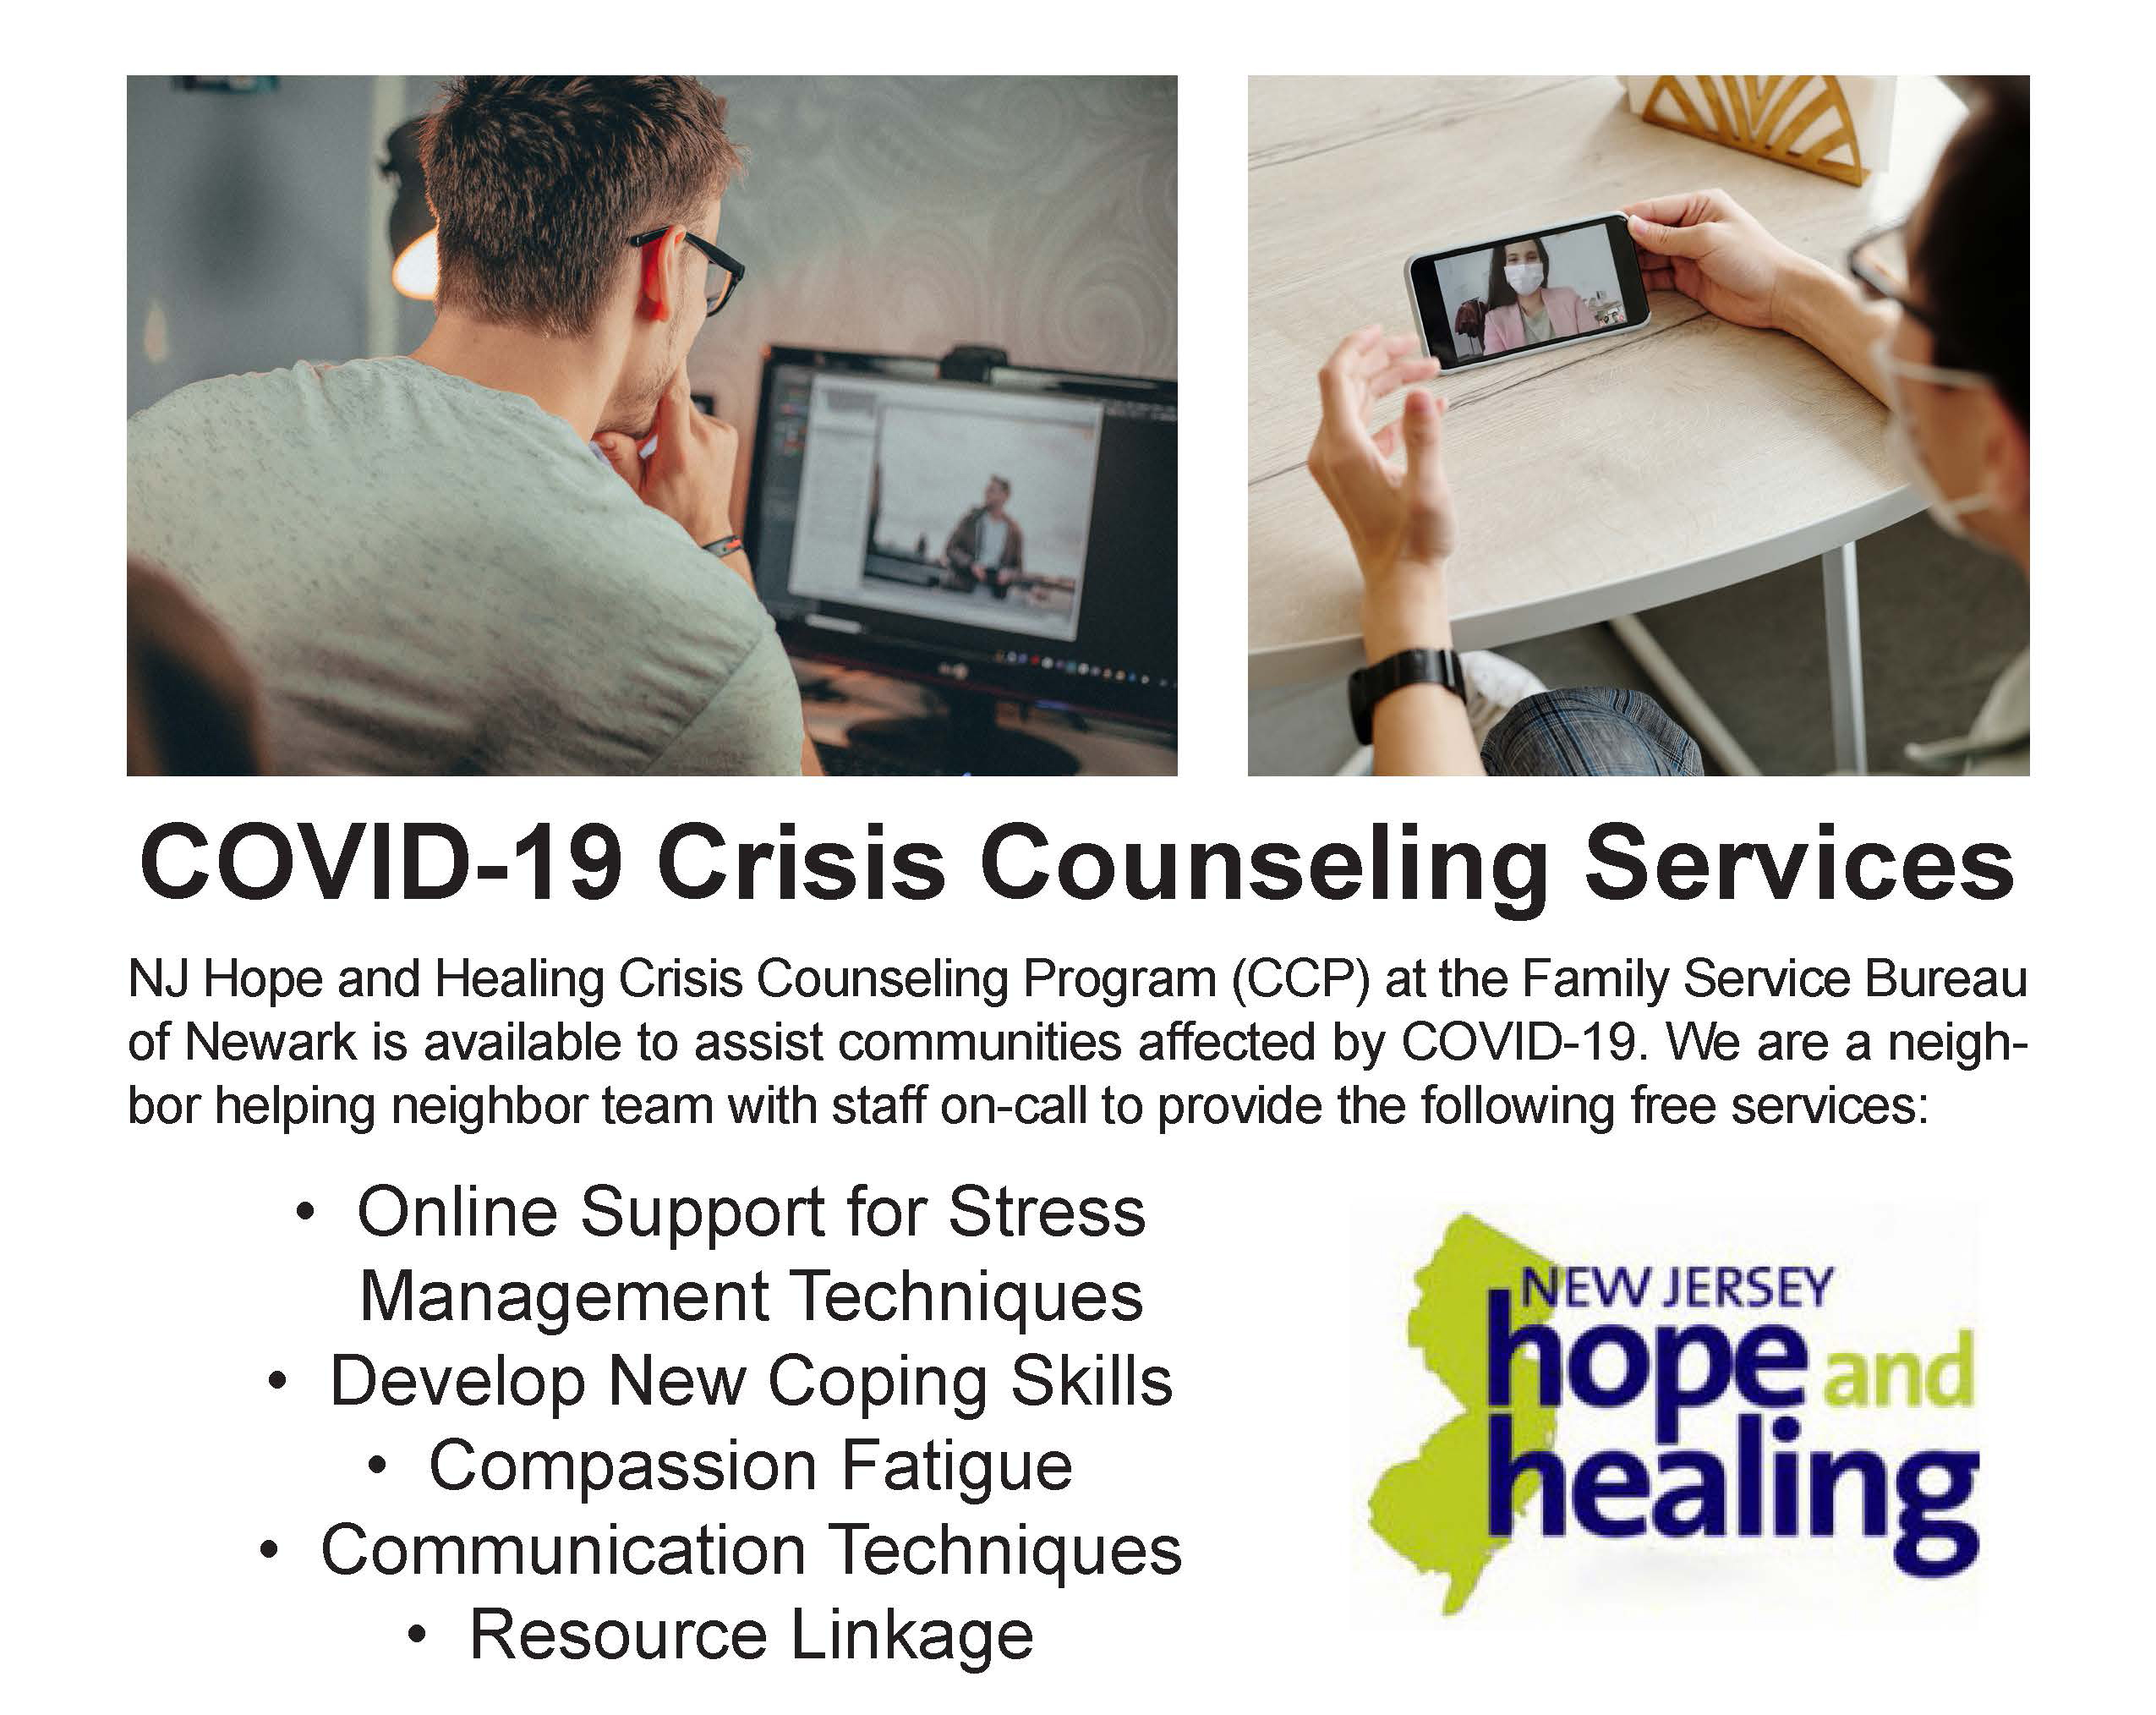 Free COVID-19 Crisis Counseling Services Available to Residents of Bergen, Essex, Hudson and Passaic Counties